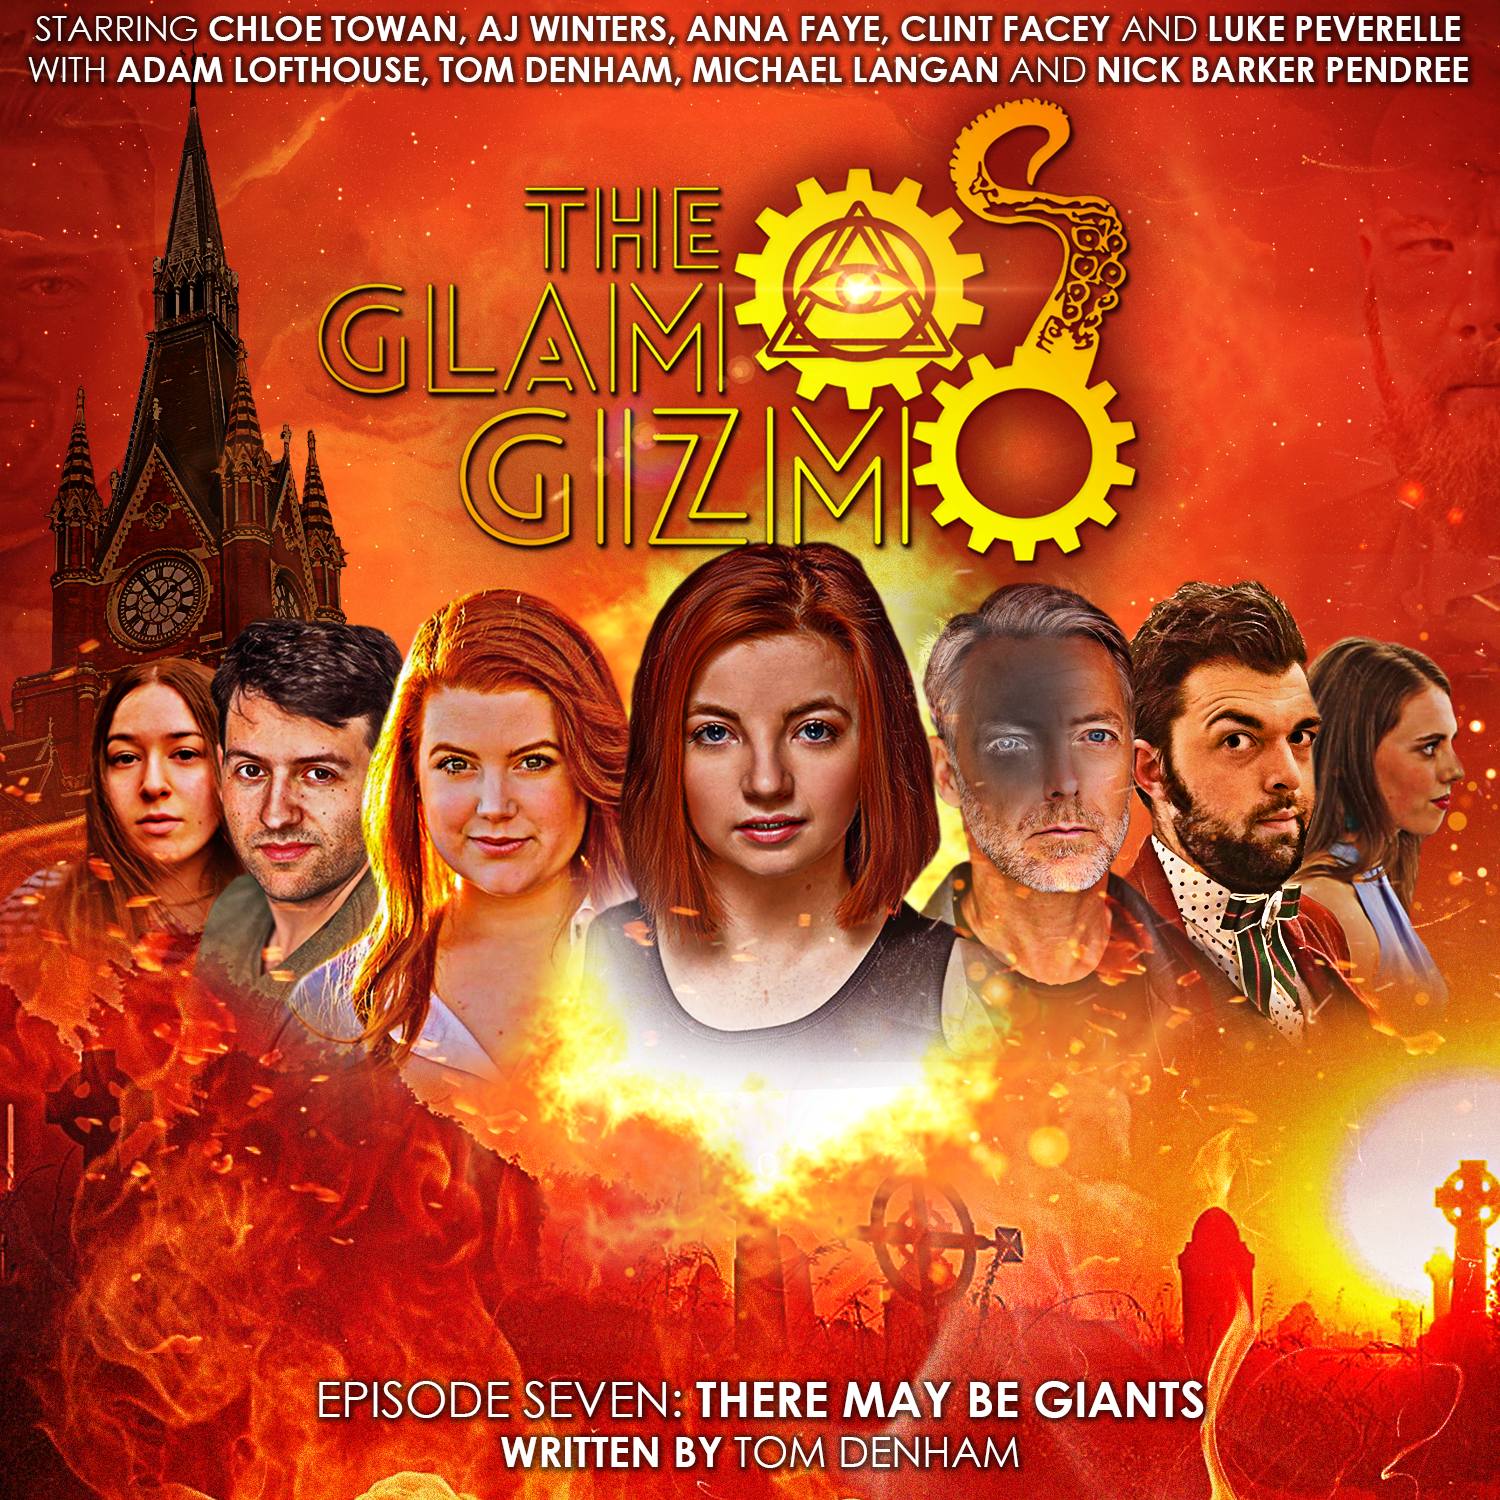 7. There May Be Giants